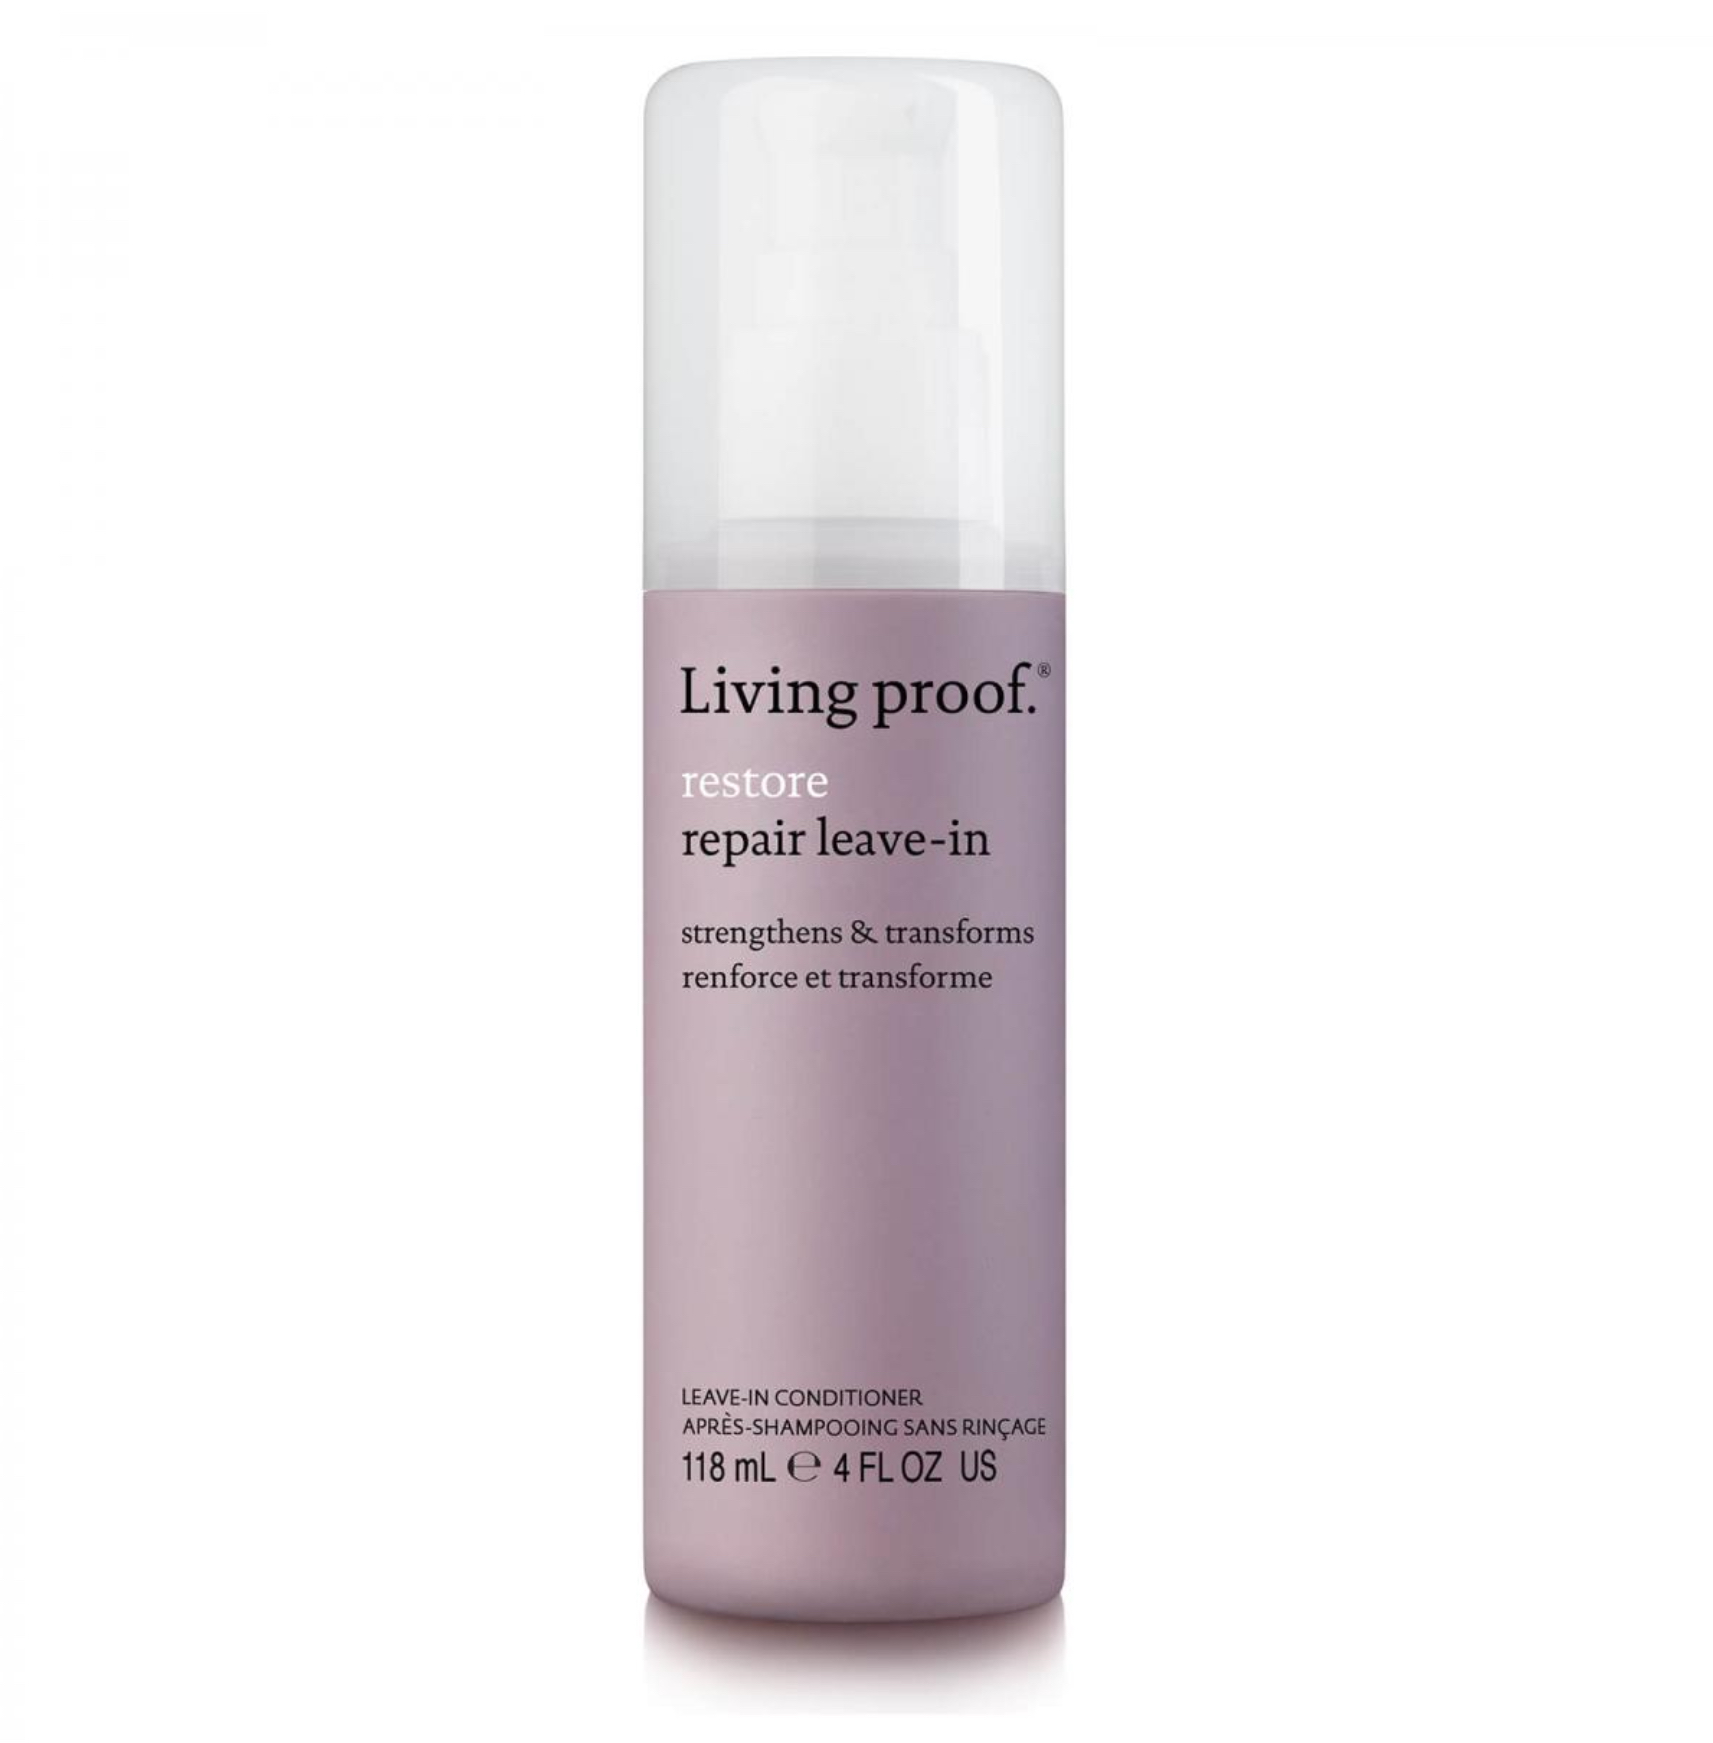 Living Proof Restore Repair Leave-in 118ml